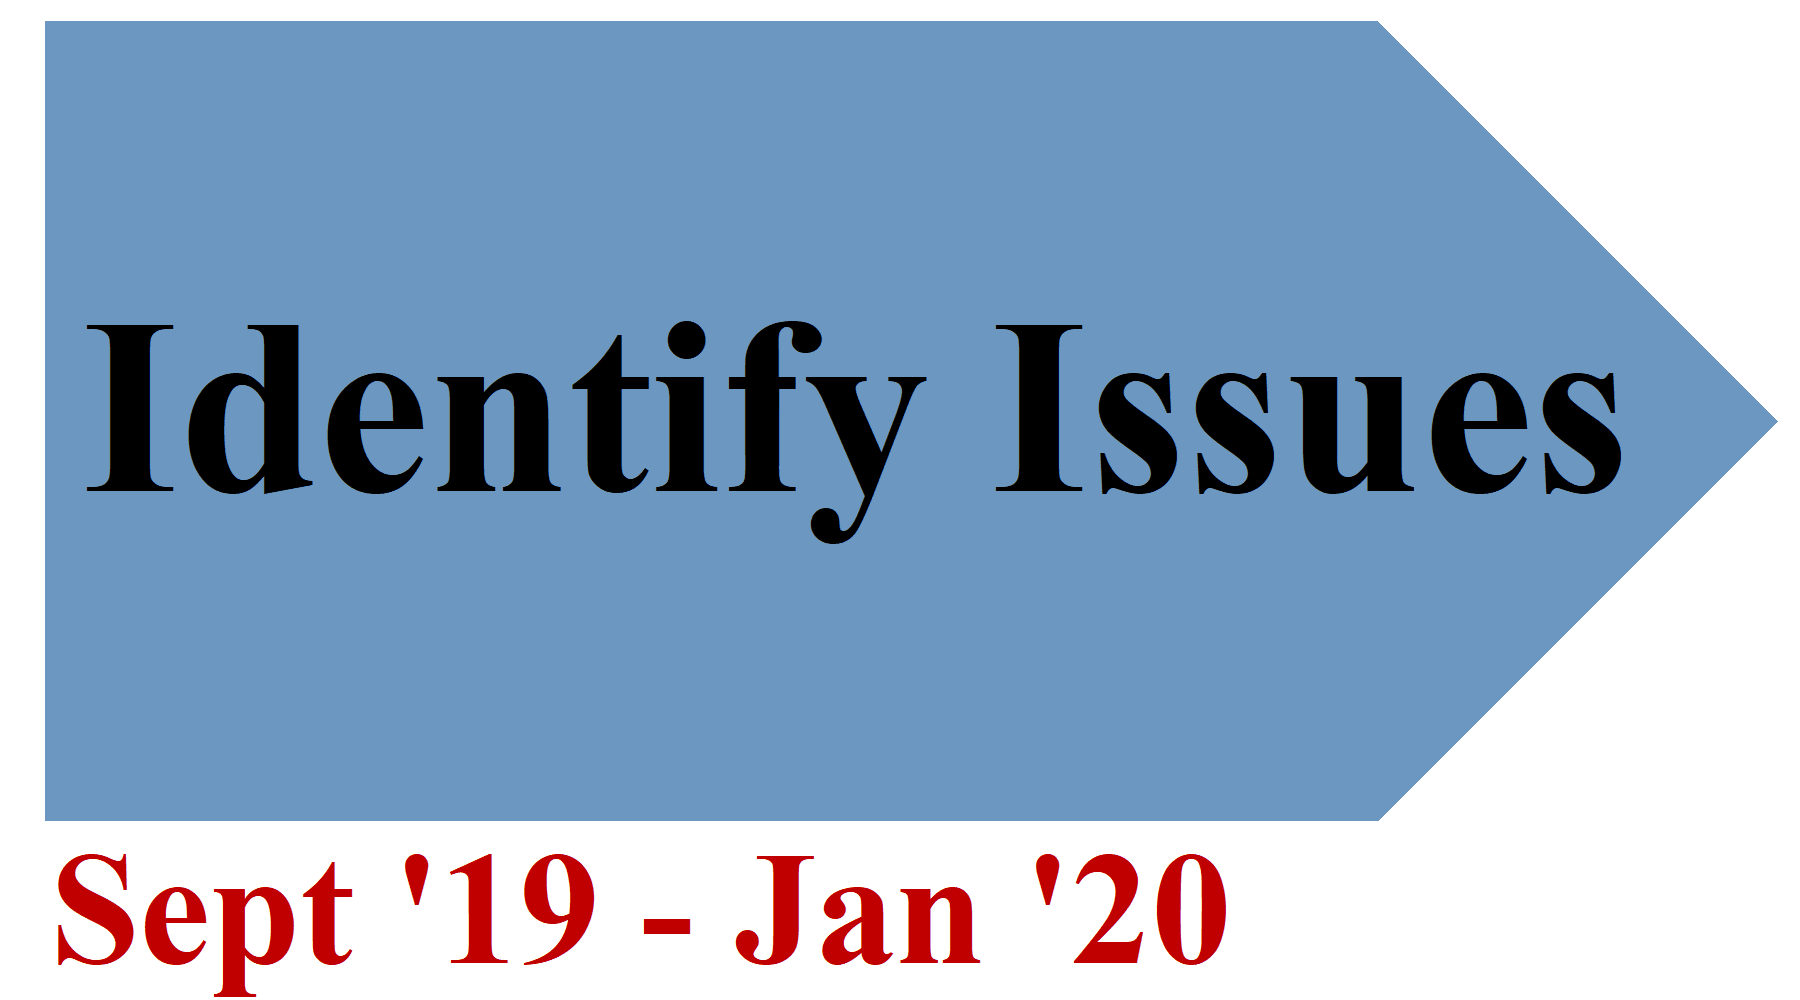 Identify Issues